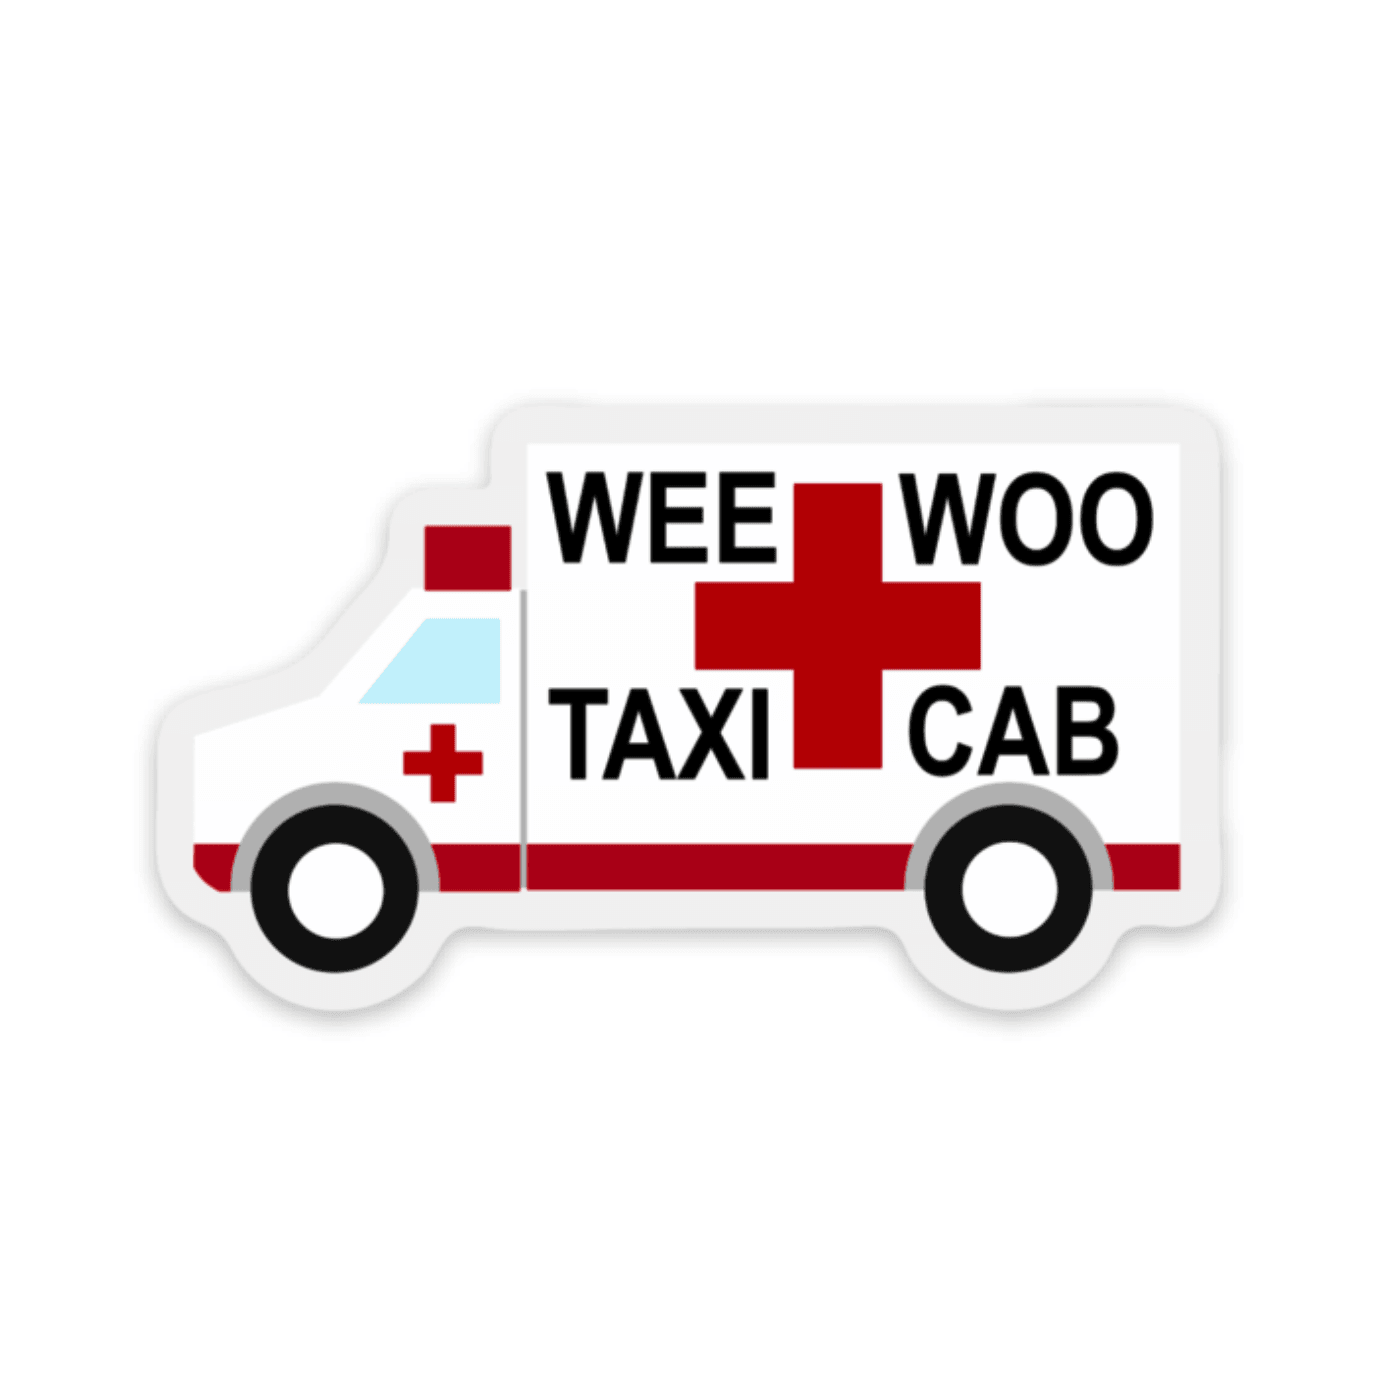 Wee Woo Taxi Cab Decal - Rad Girl Creations